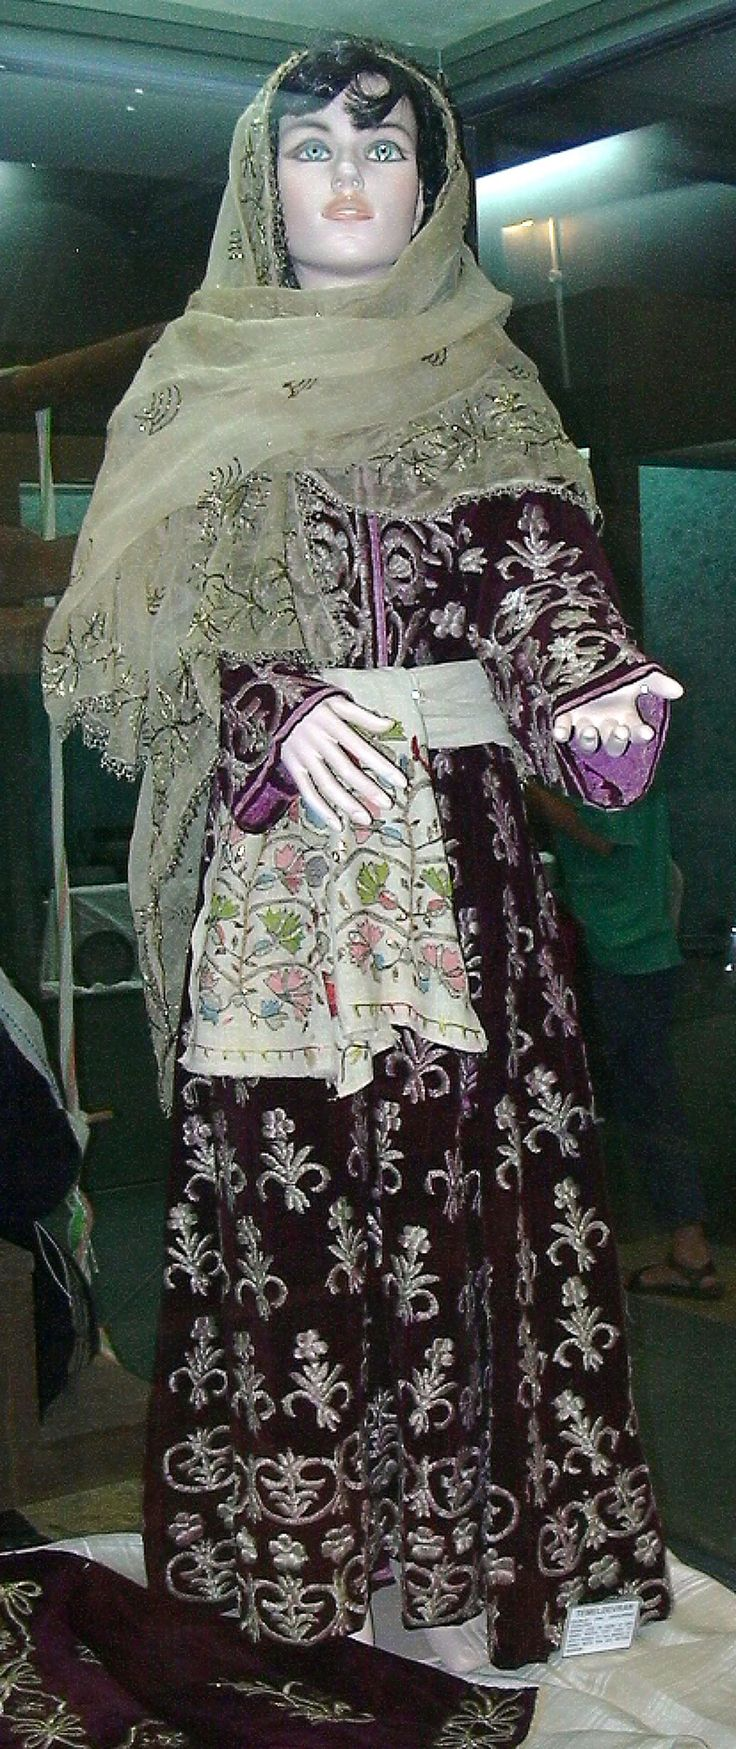 Traditional engagement/festive costume from the Muğla province. Urban style, early 20th cenntury. Type: 'bindallı entari' (embroidered robe). On exhibit (2003) in the Muğla Provincial Museum. (Picture: J.M. Criel – Archives of Kavak/Antwerpen).